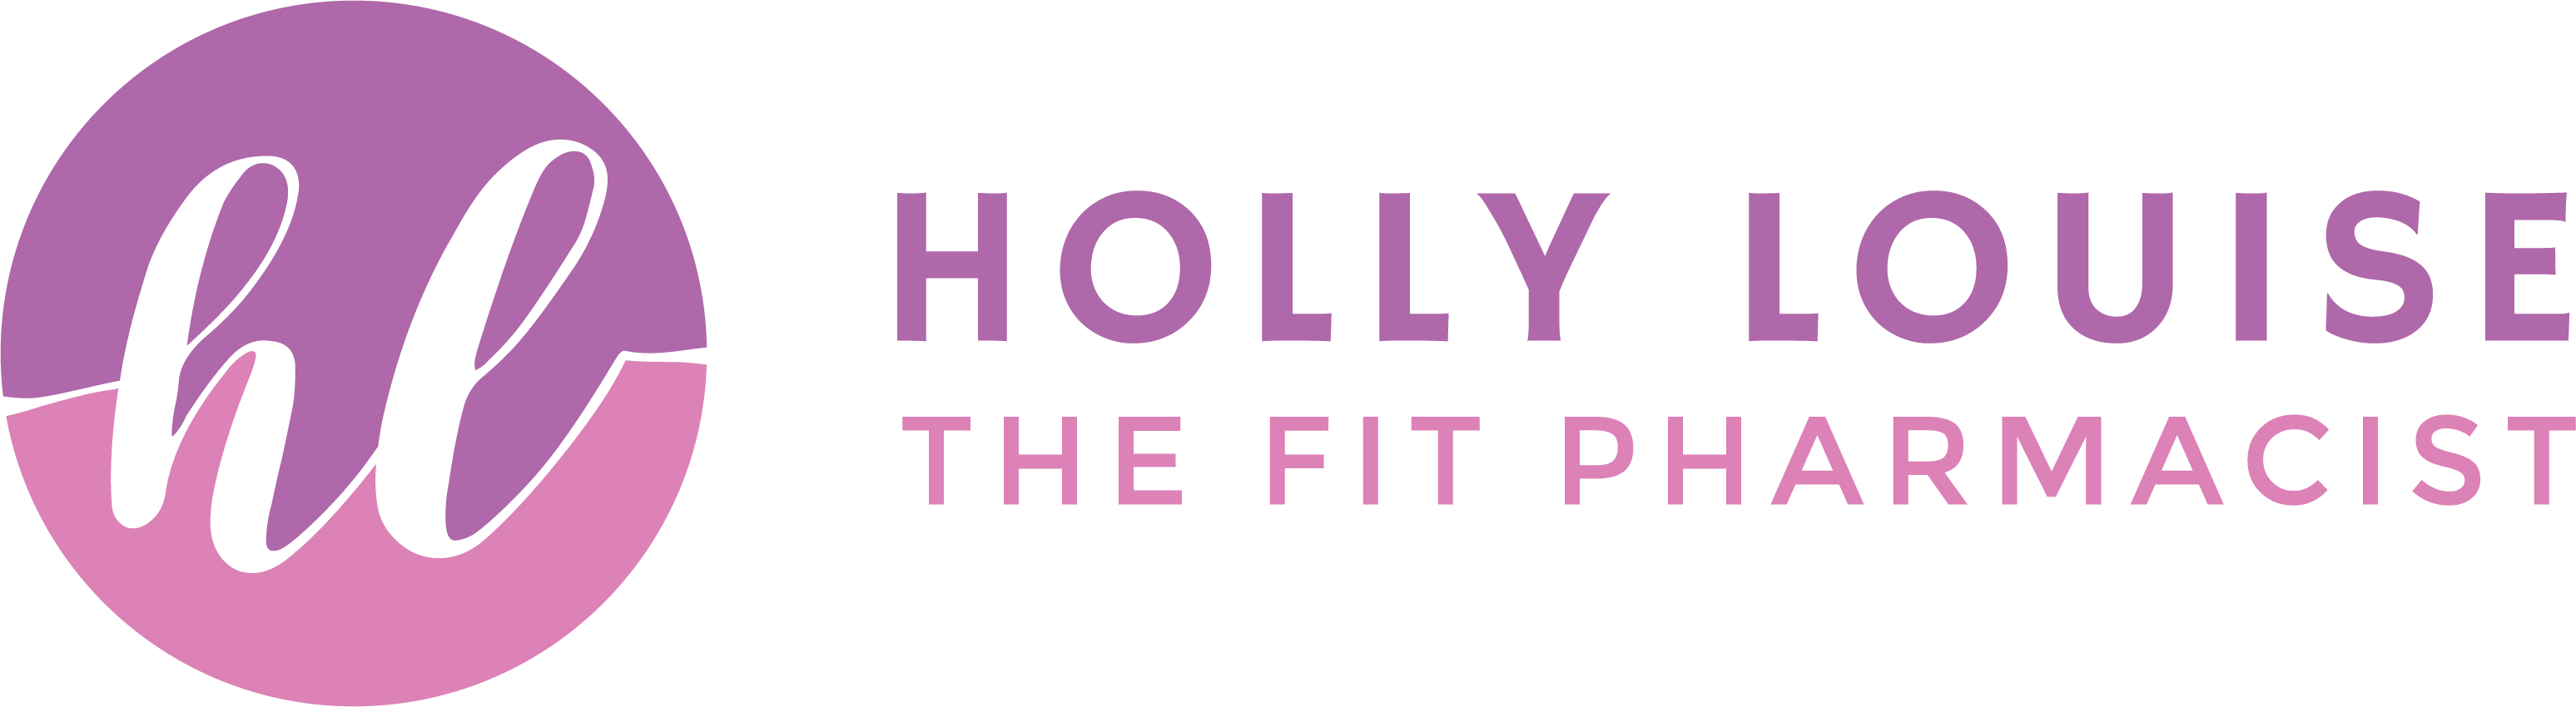 Holly Louise - The Fit Pharmacist